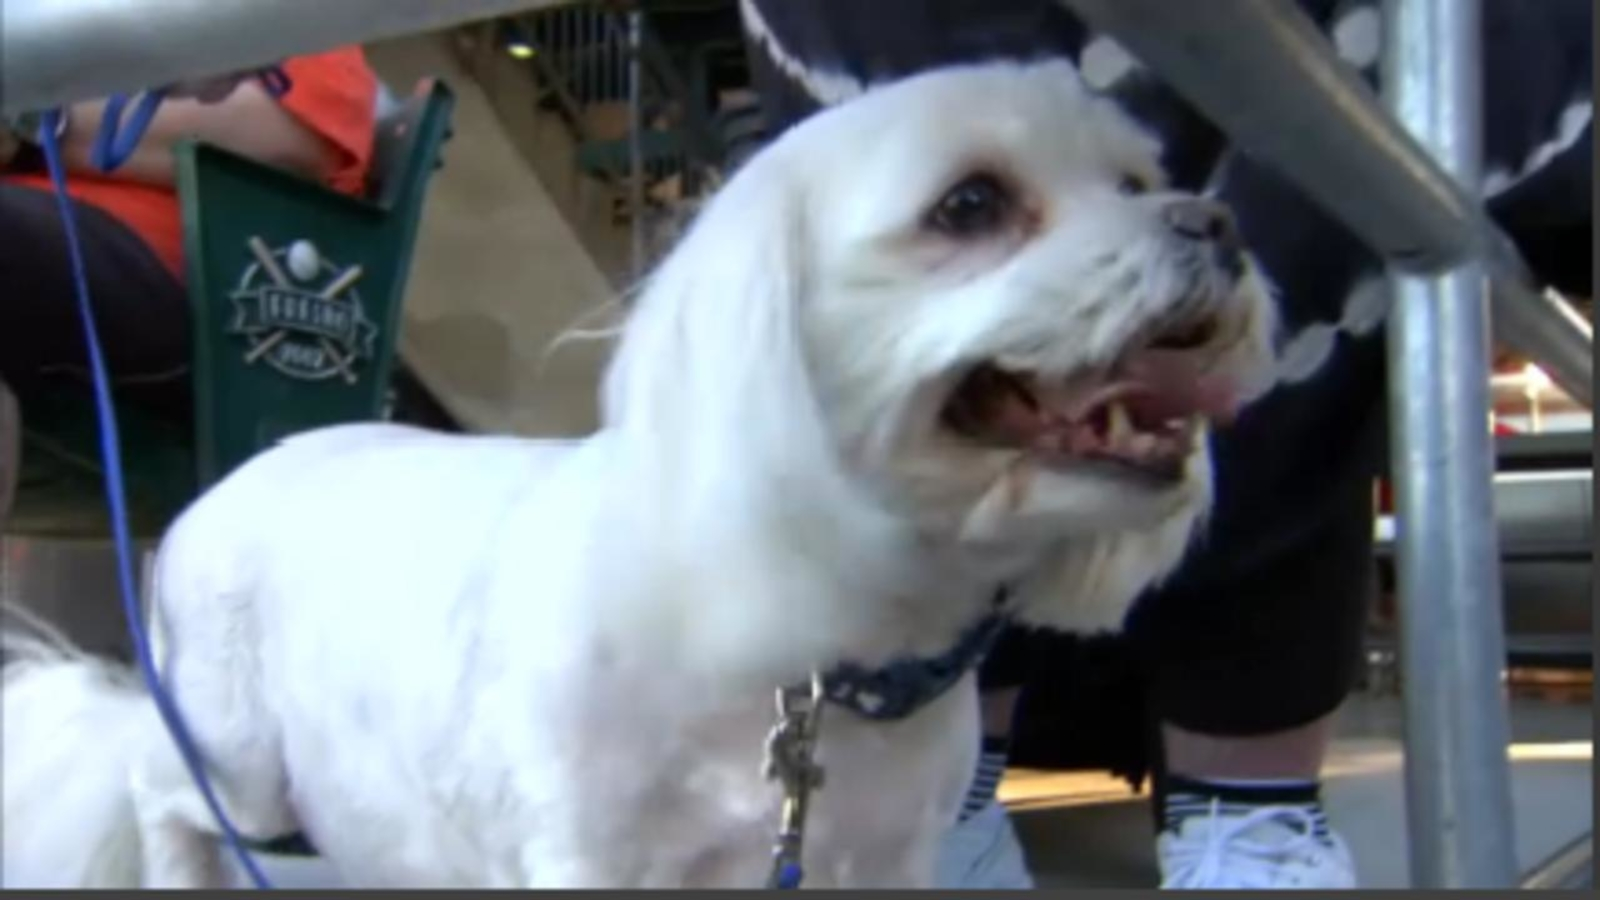 Fresno Grizzlies cancel 'Bark in the Park' because of heat